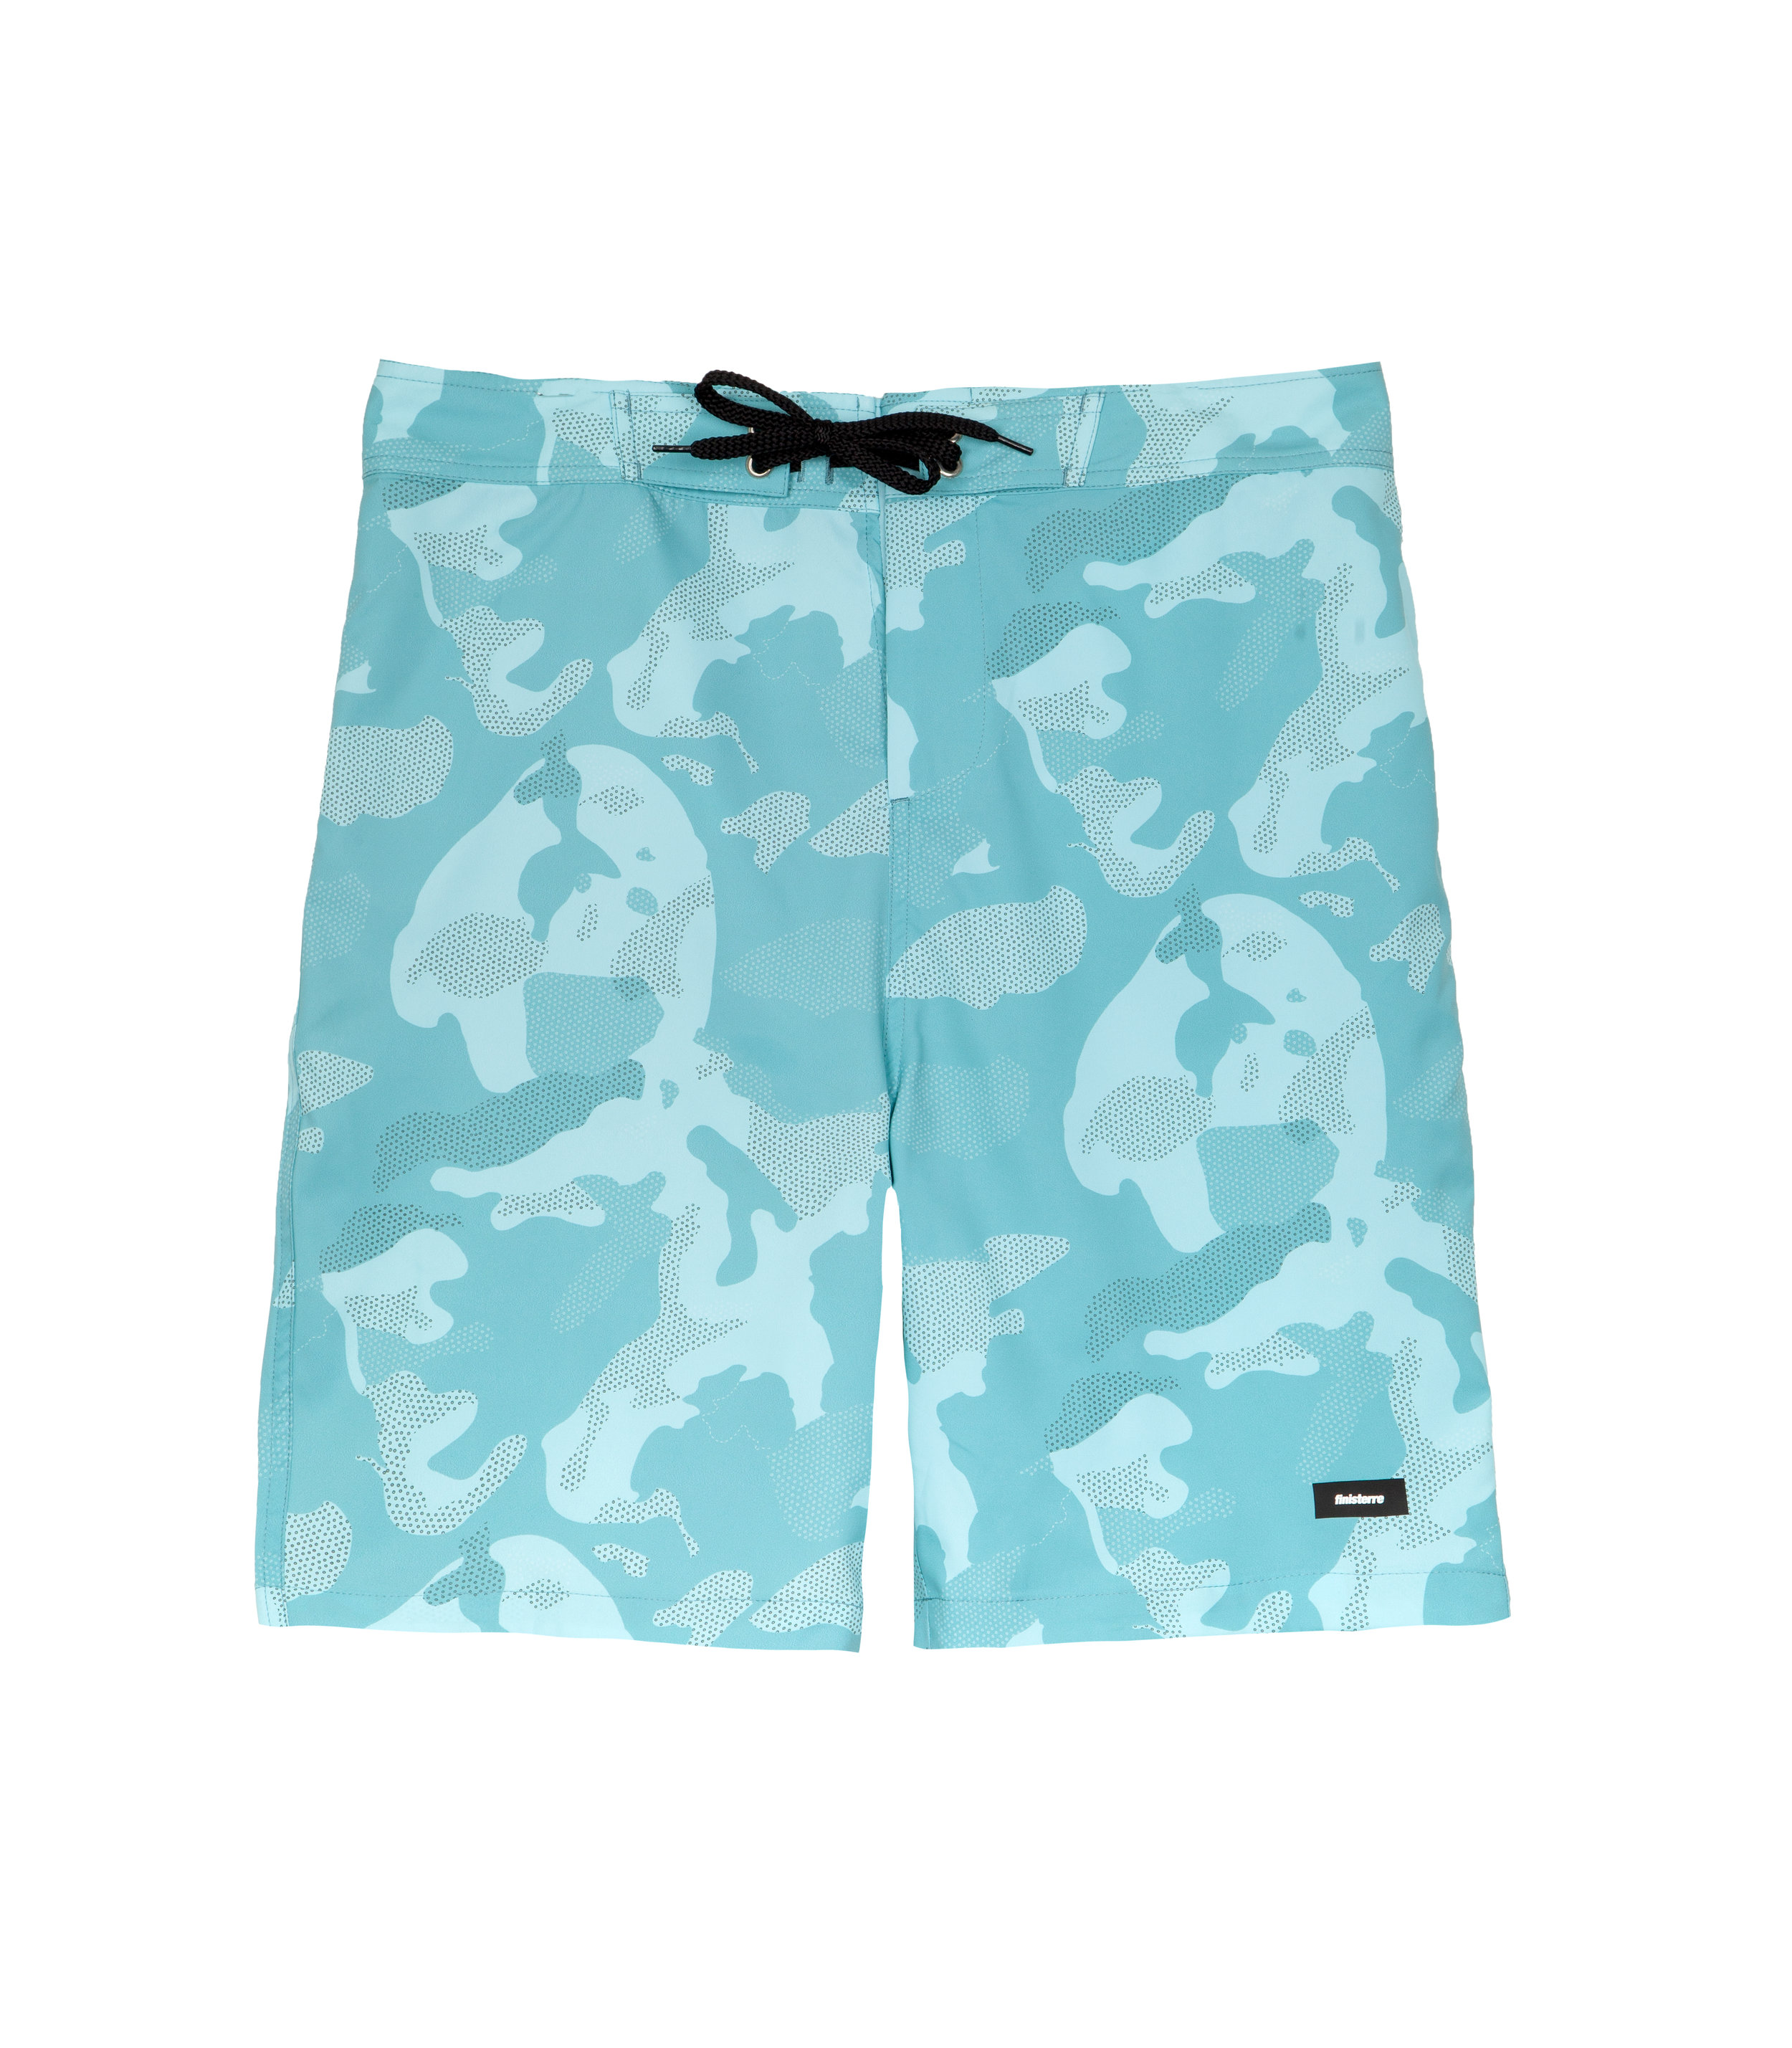 Pelcomb    board shorts   , £75